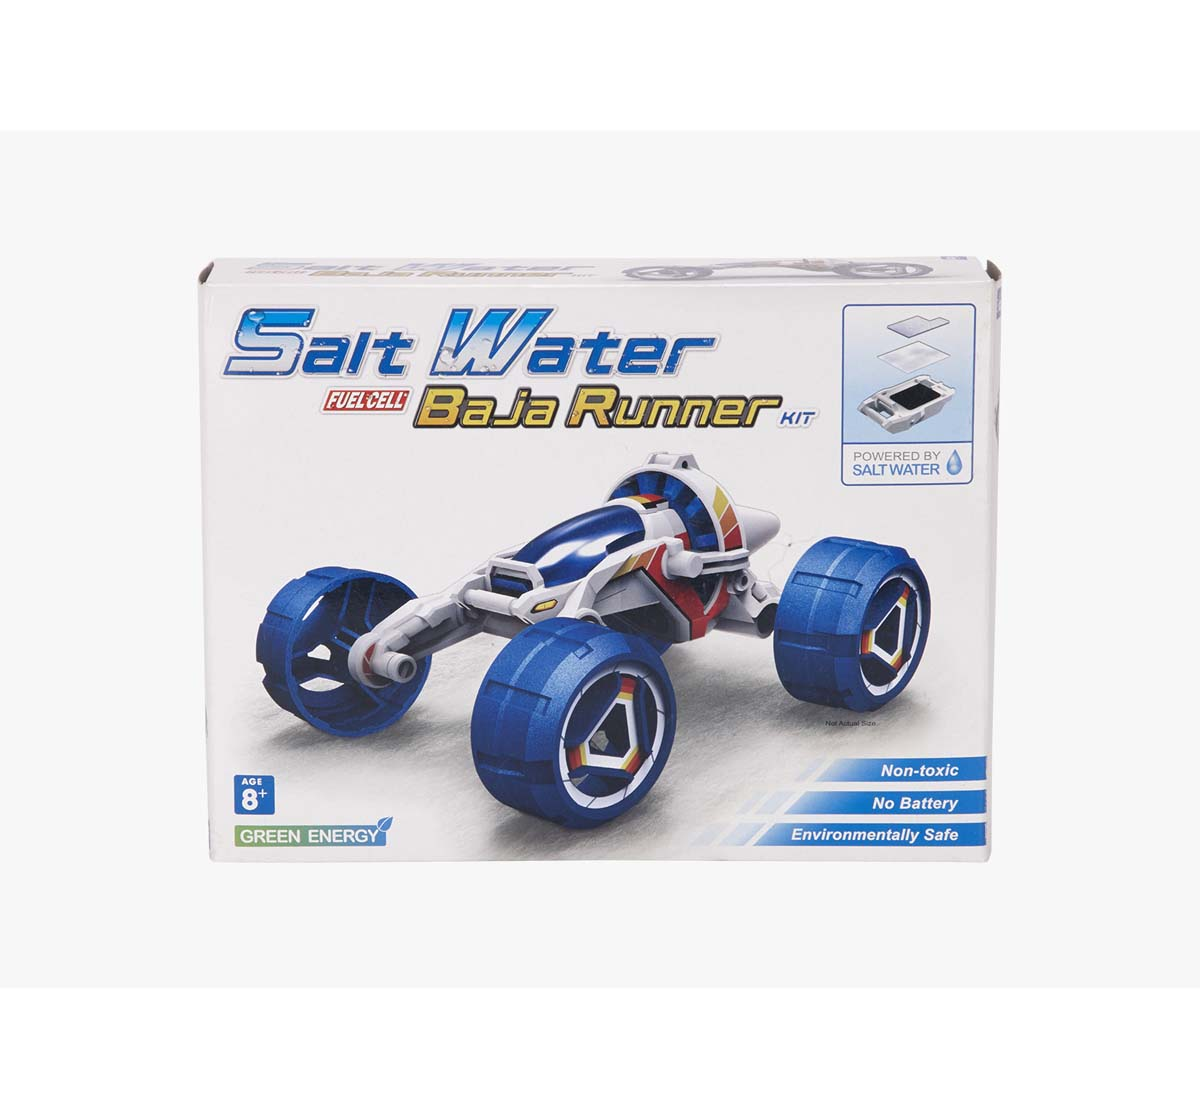 Red 5   Red5 Blue Salt Water Fuel Cell Baja Runner Science Kits for Kids age 8Y+